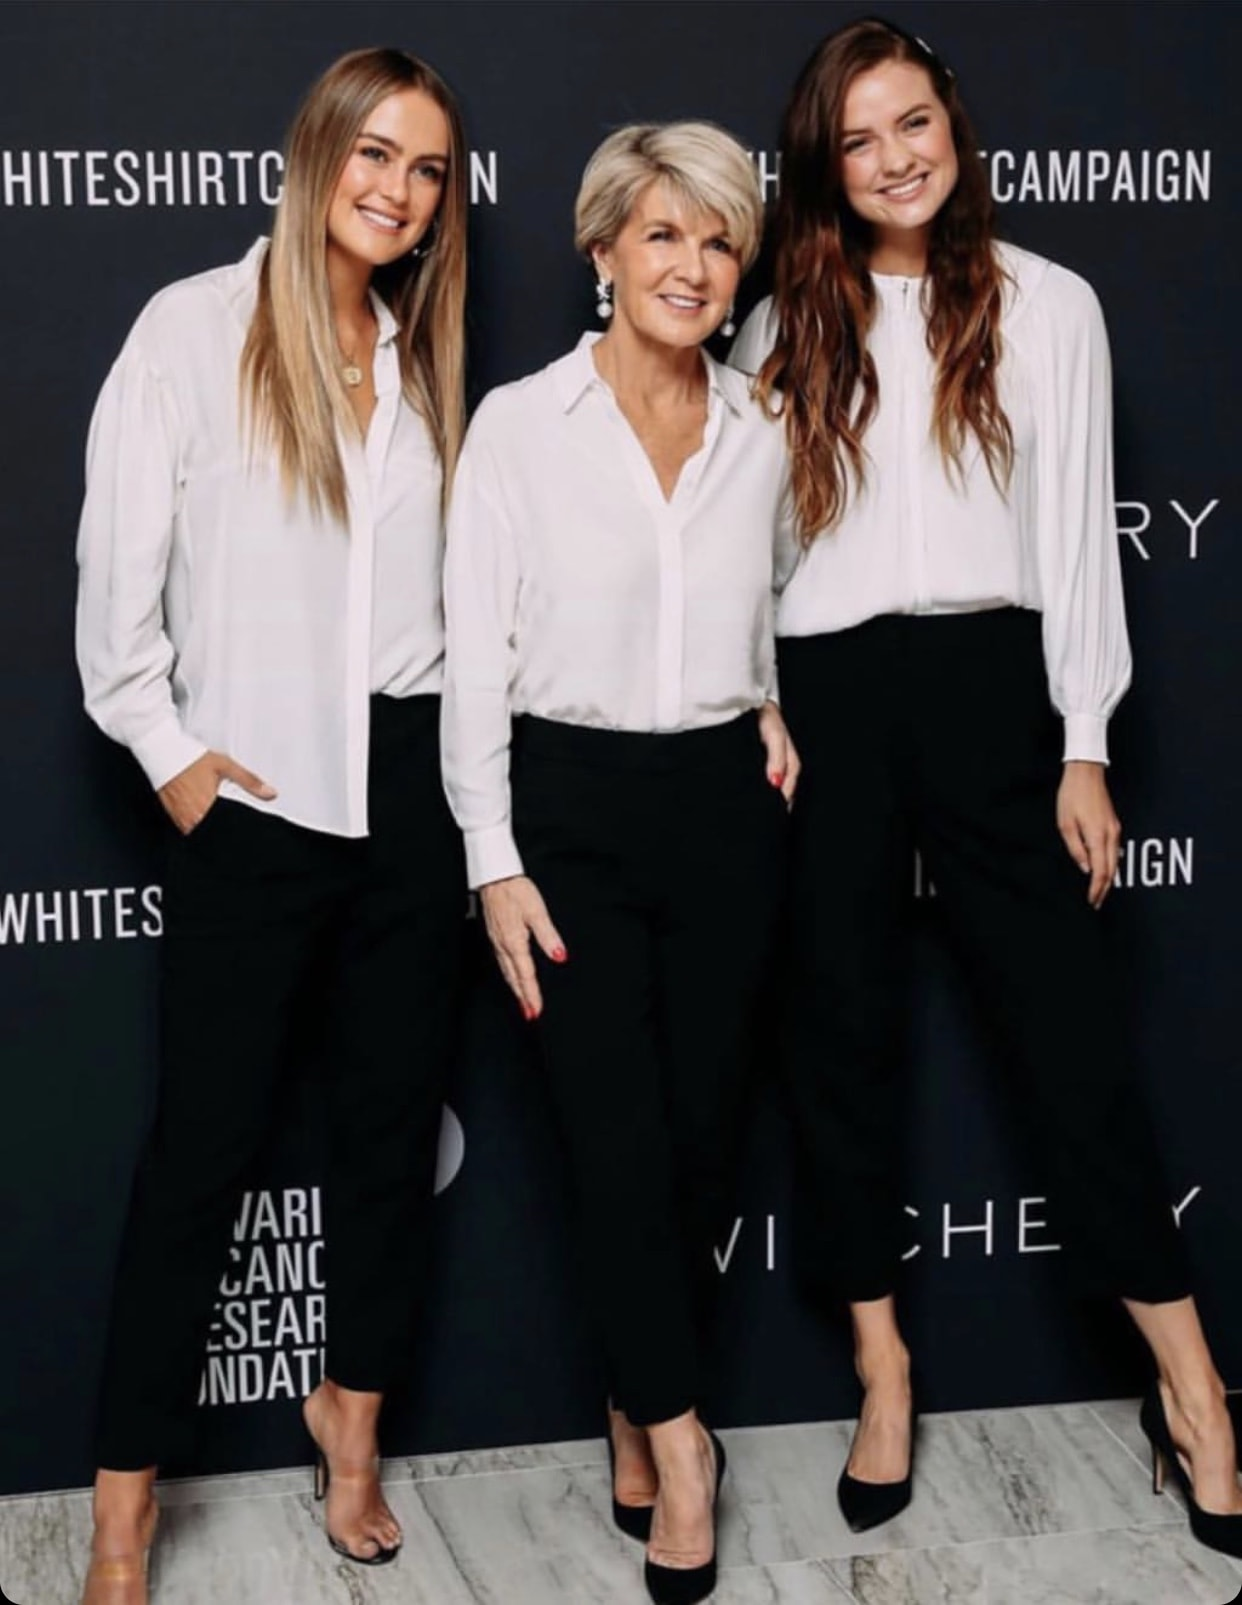 Steph Claire Smith, Julie Bishop, Laura Henshaw for Witchery White Shirt campaign.